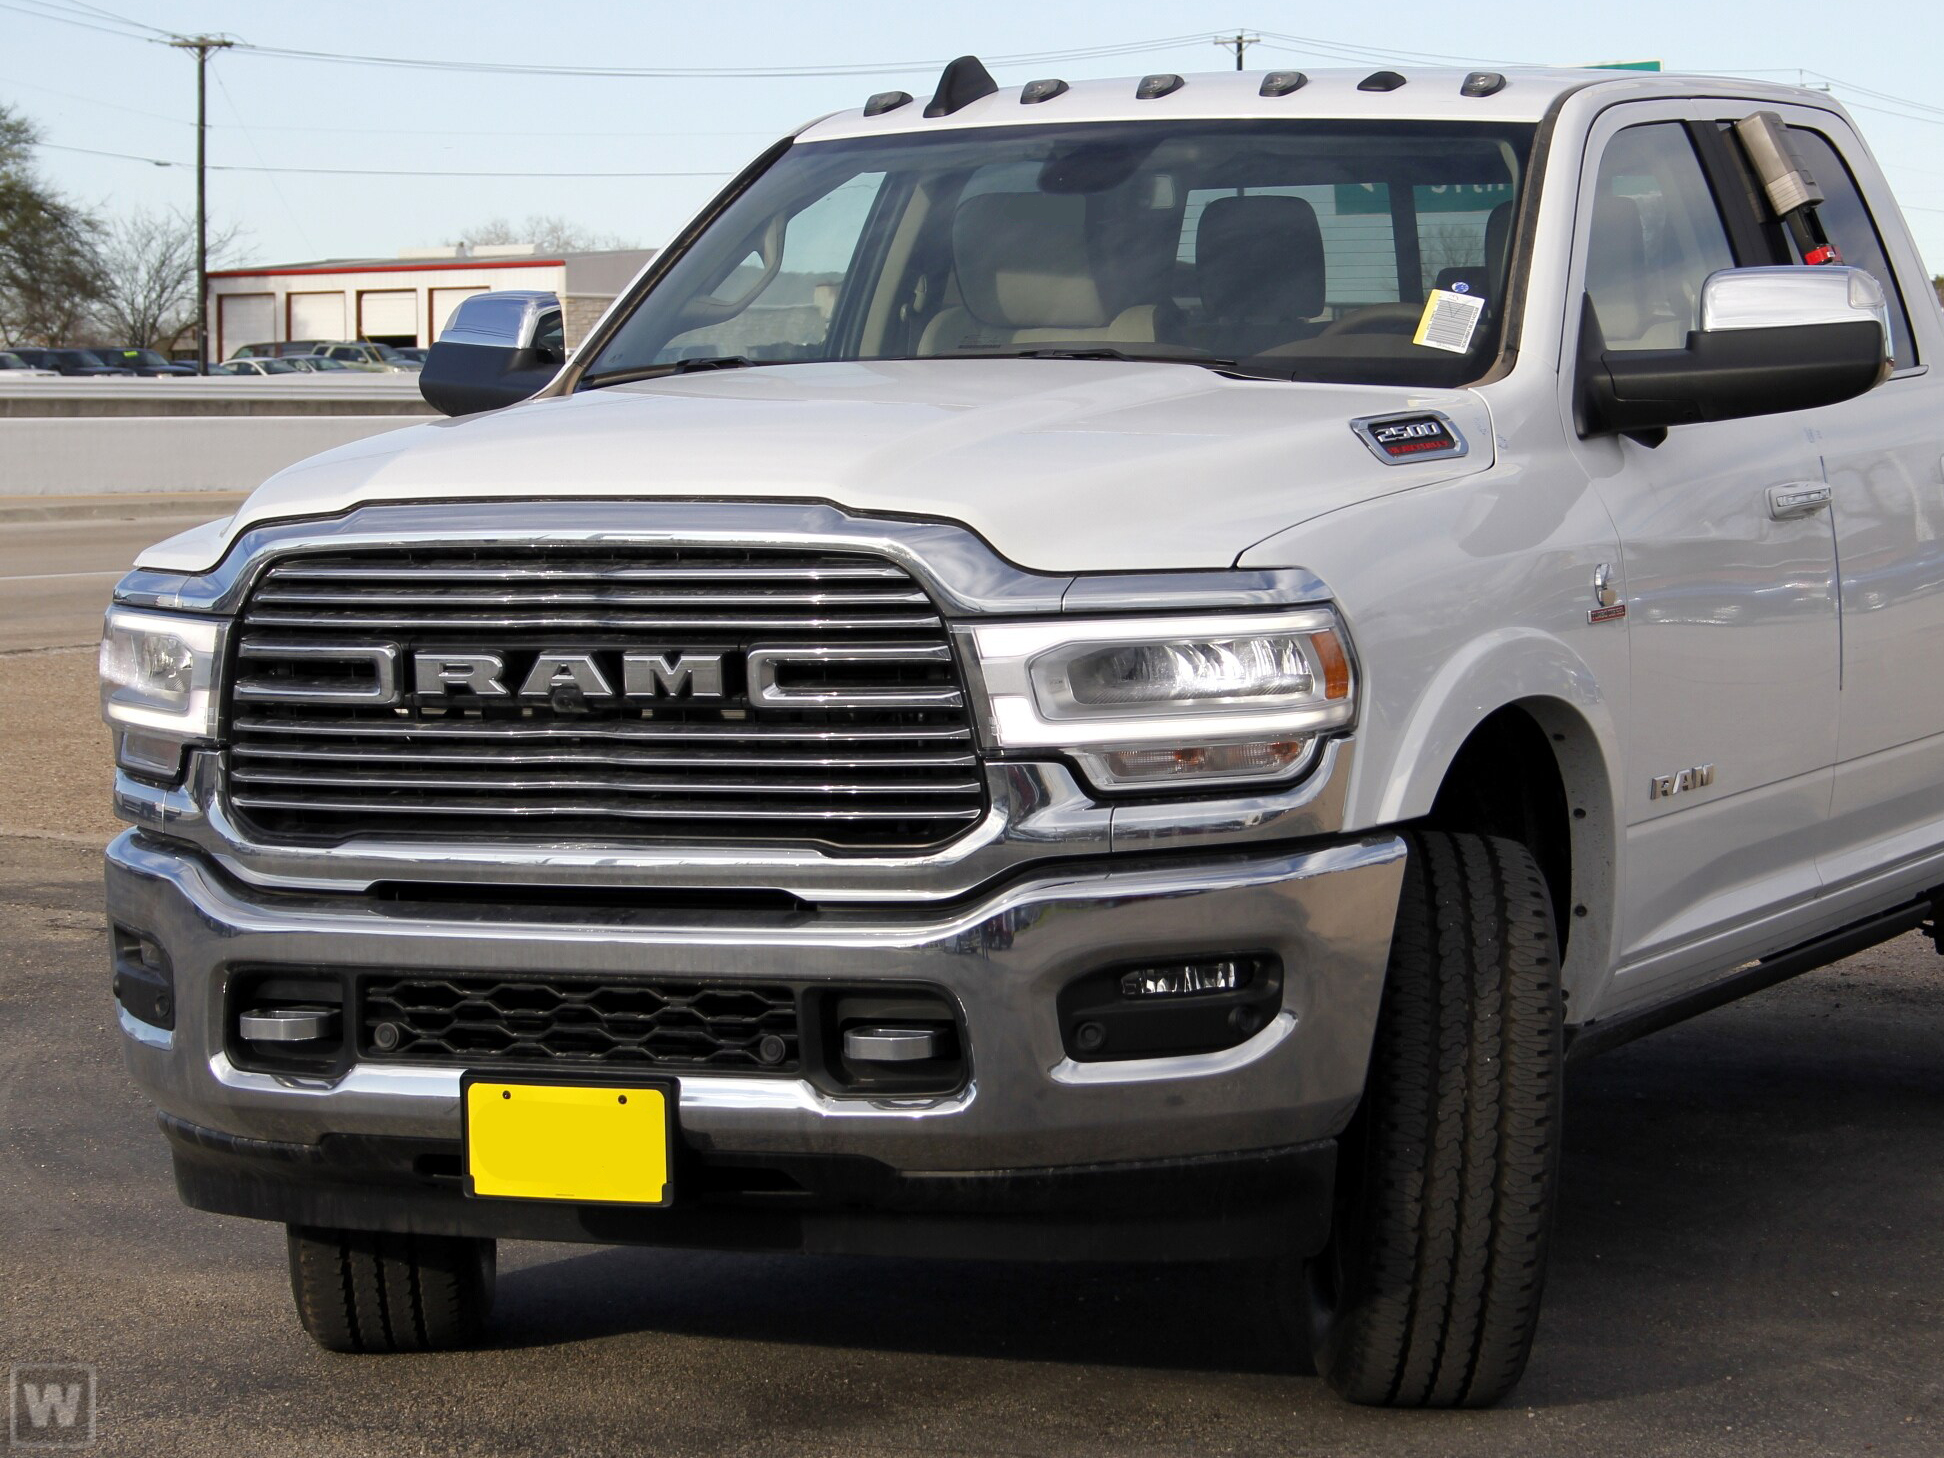 2020 Ram 2500 Crew Cab 4x4, Pickup #R2610 - photo 1